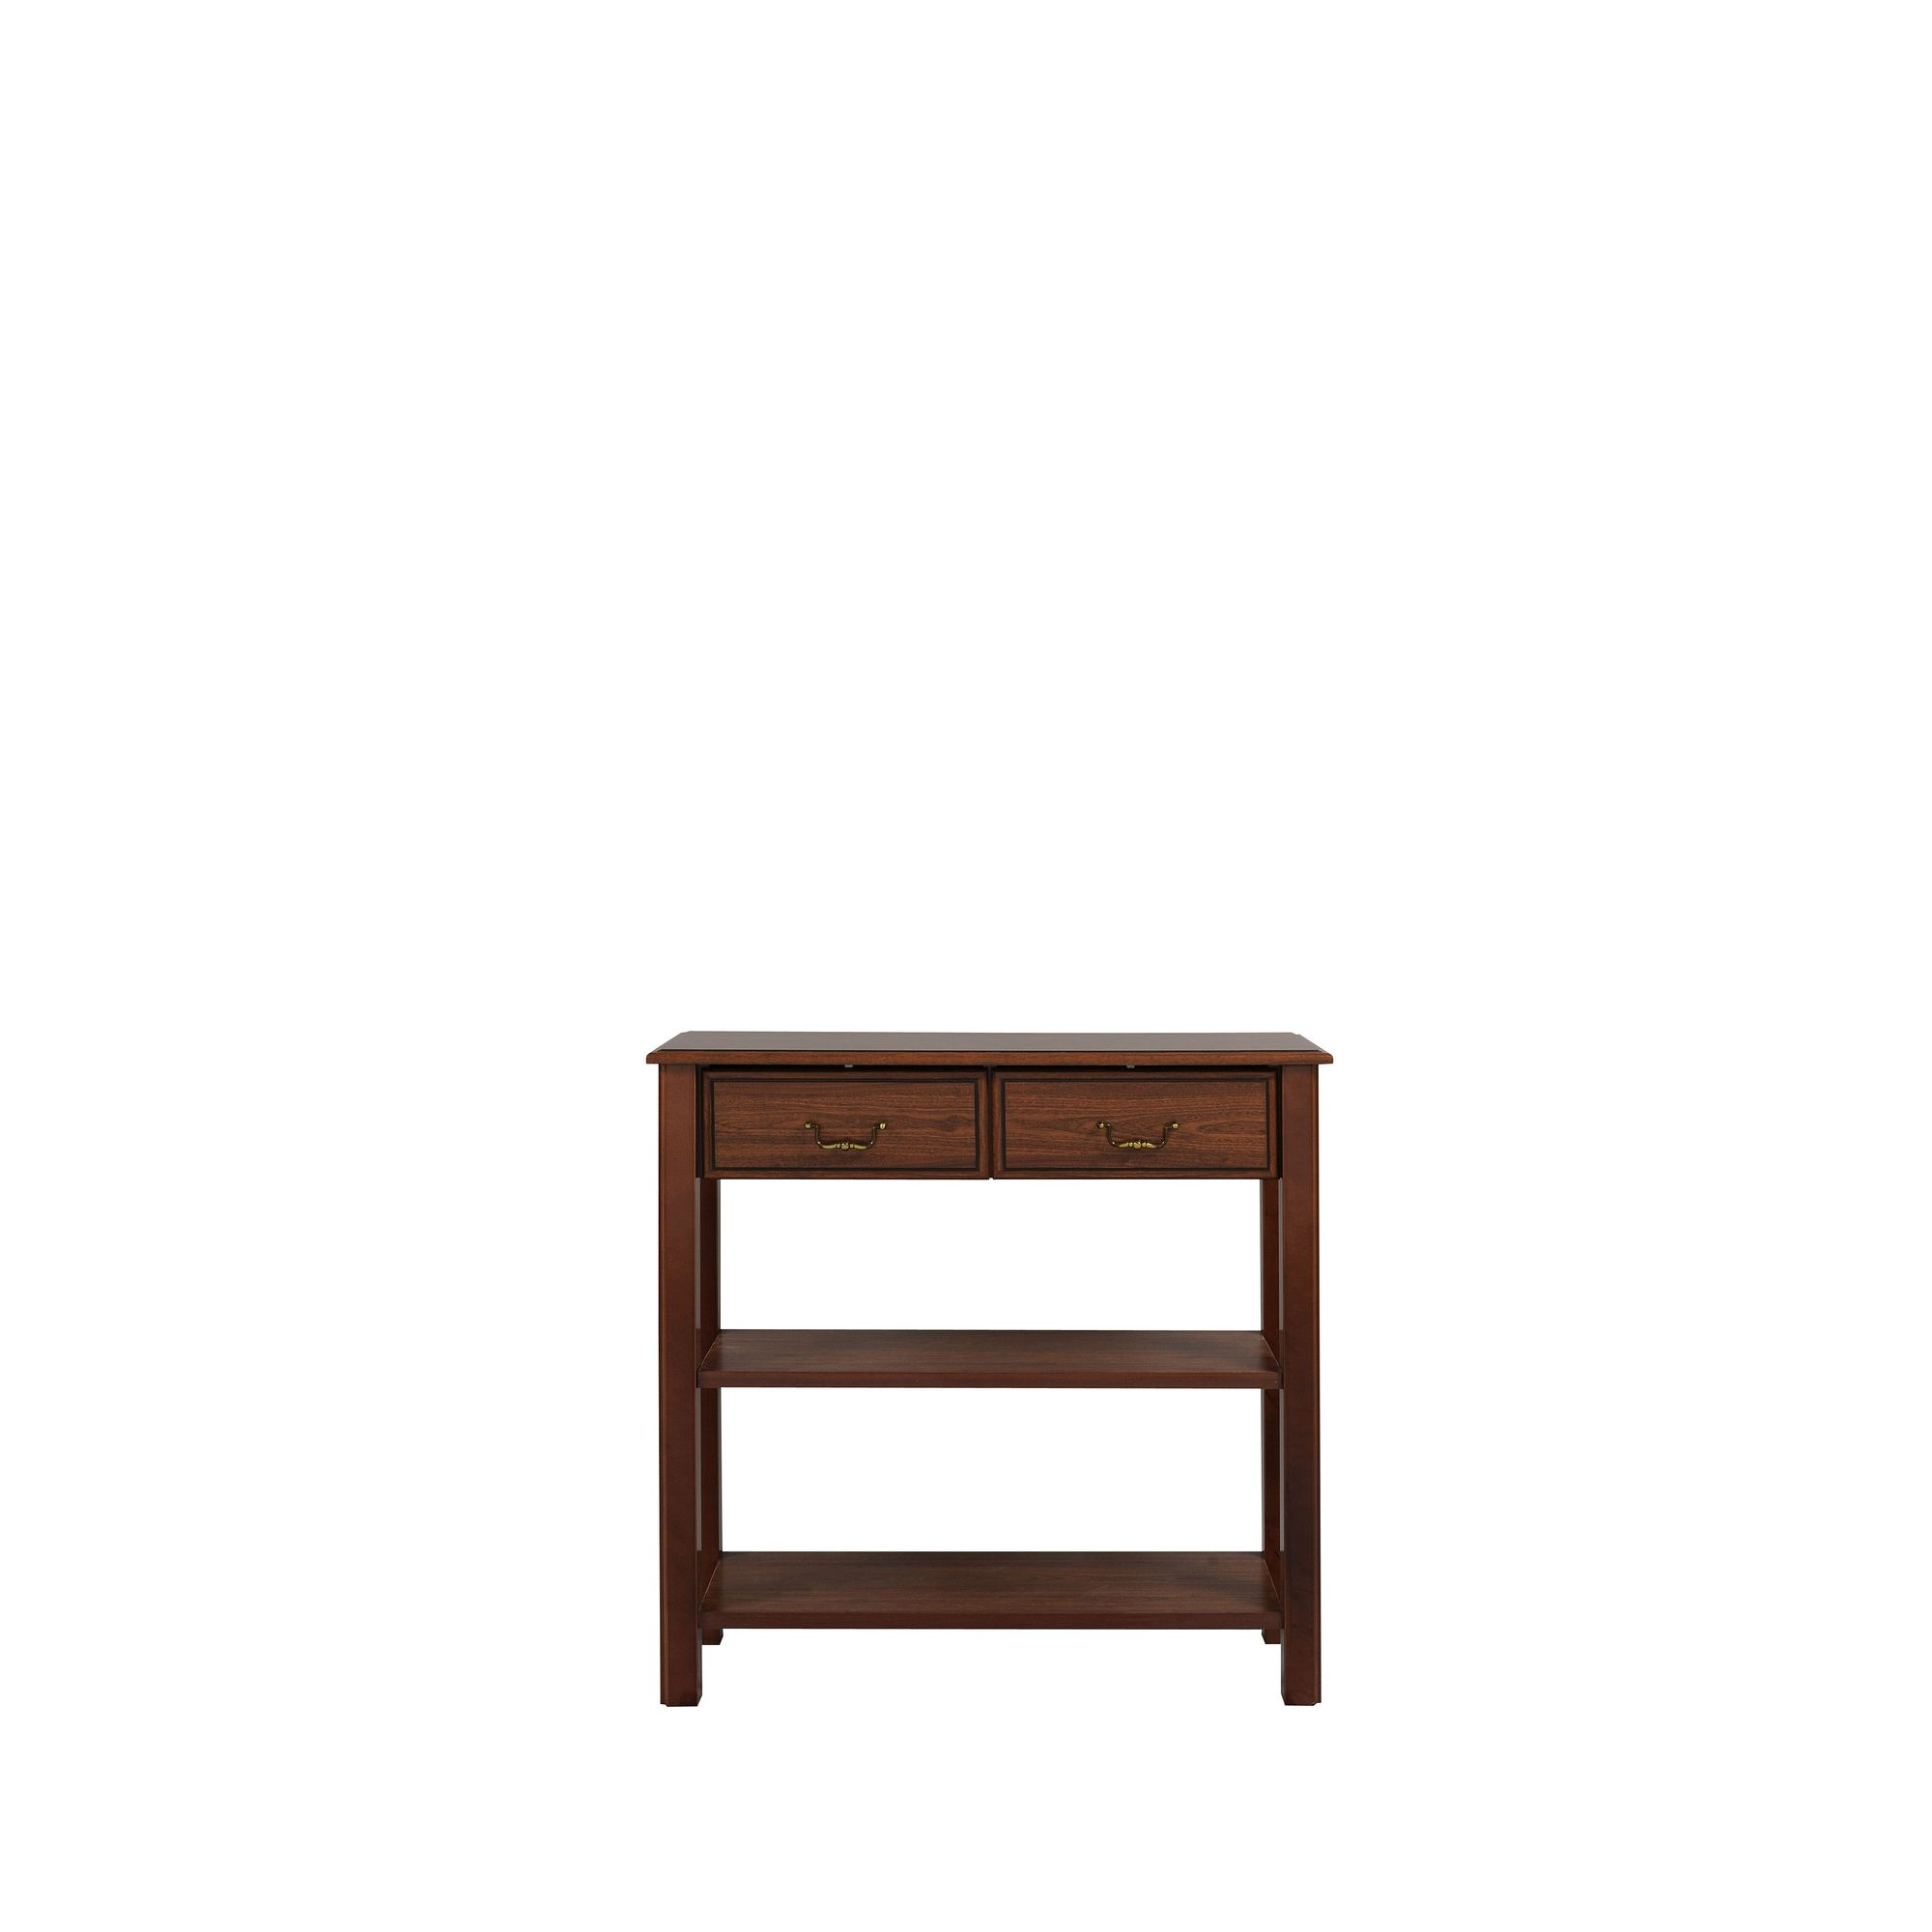 Caxton Byron Console Table in Mahogany at Tesco Direct